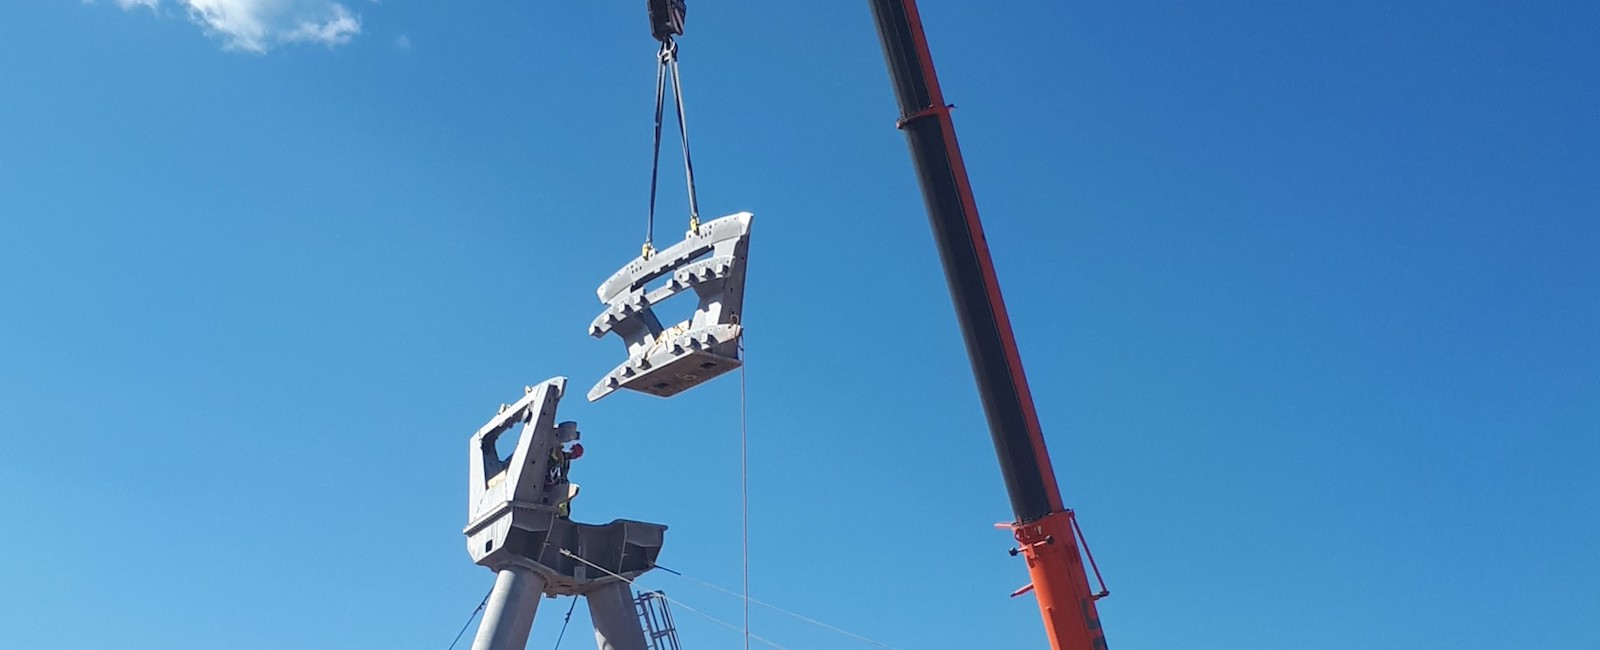 Doppelmayr: Assembly of RopeCon Conveyor started at Booysendal Platinum Mine